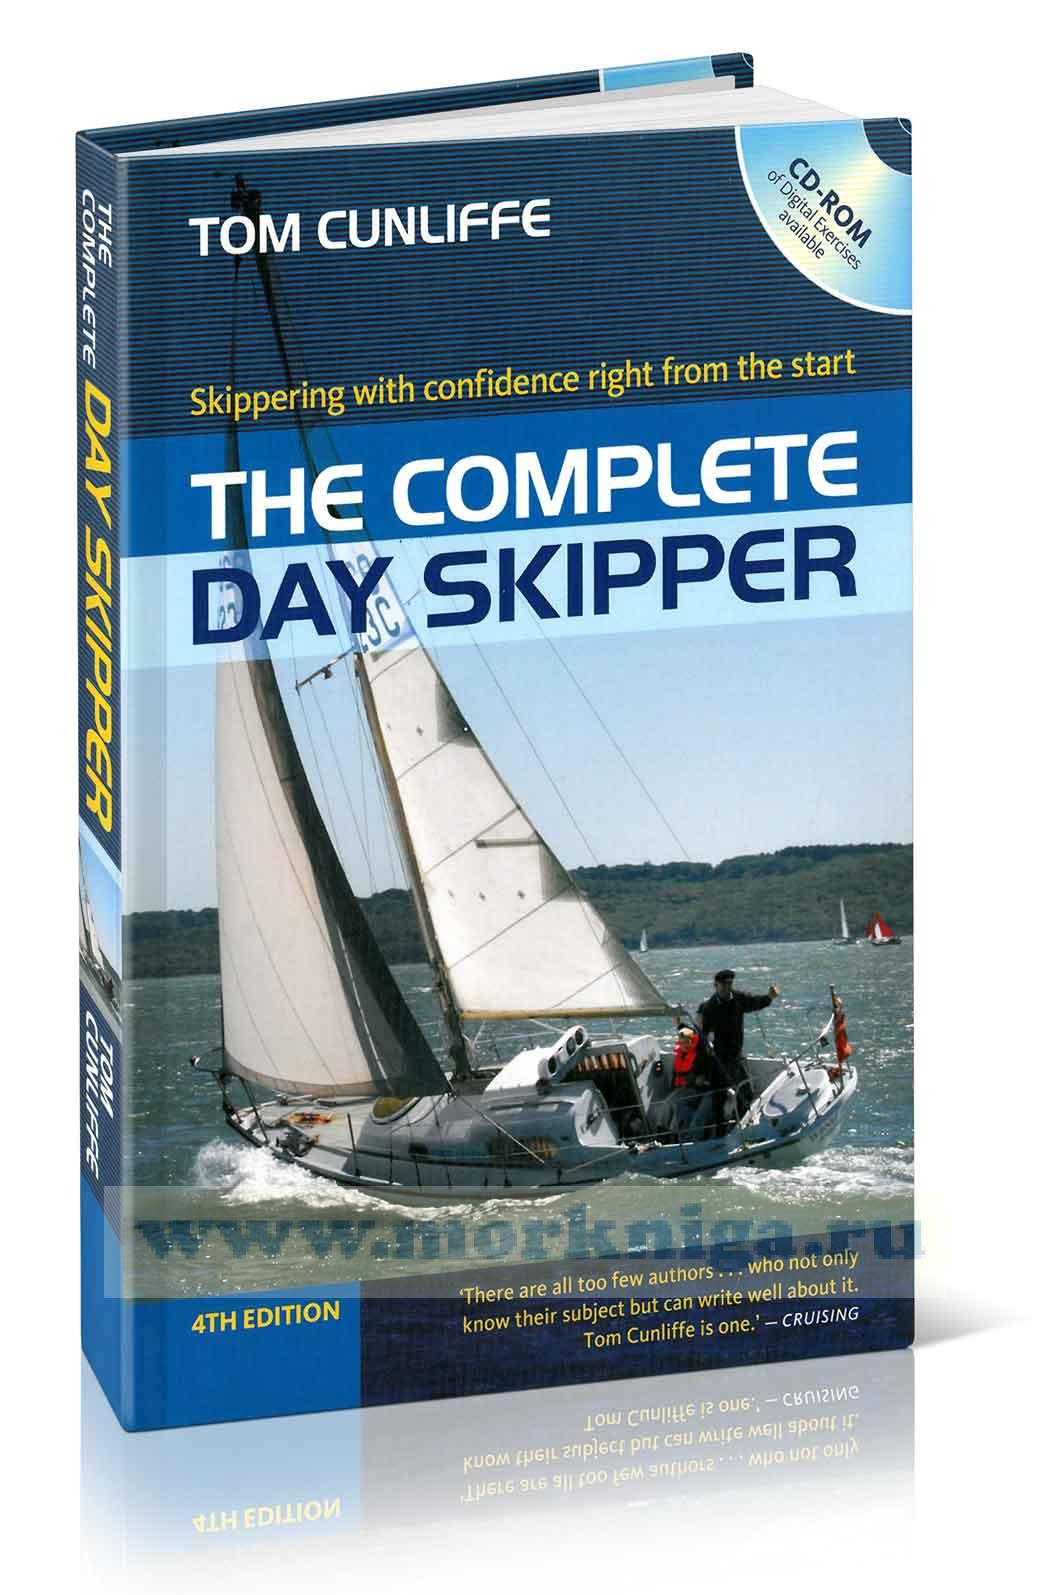 The Complete Day Skipper. 4th edition